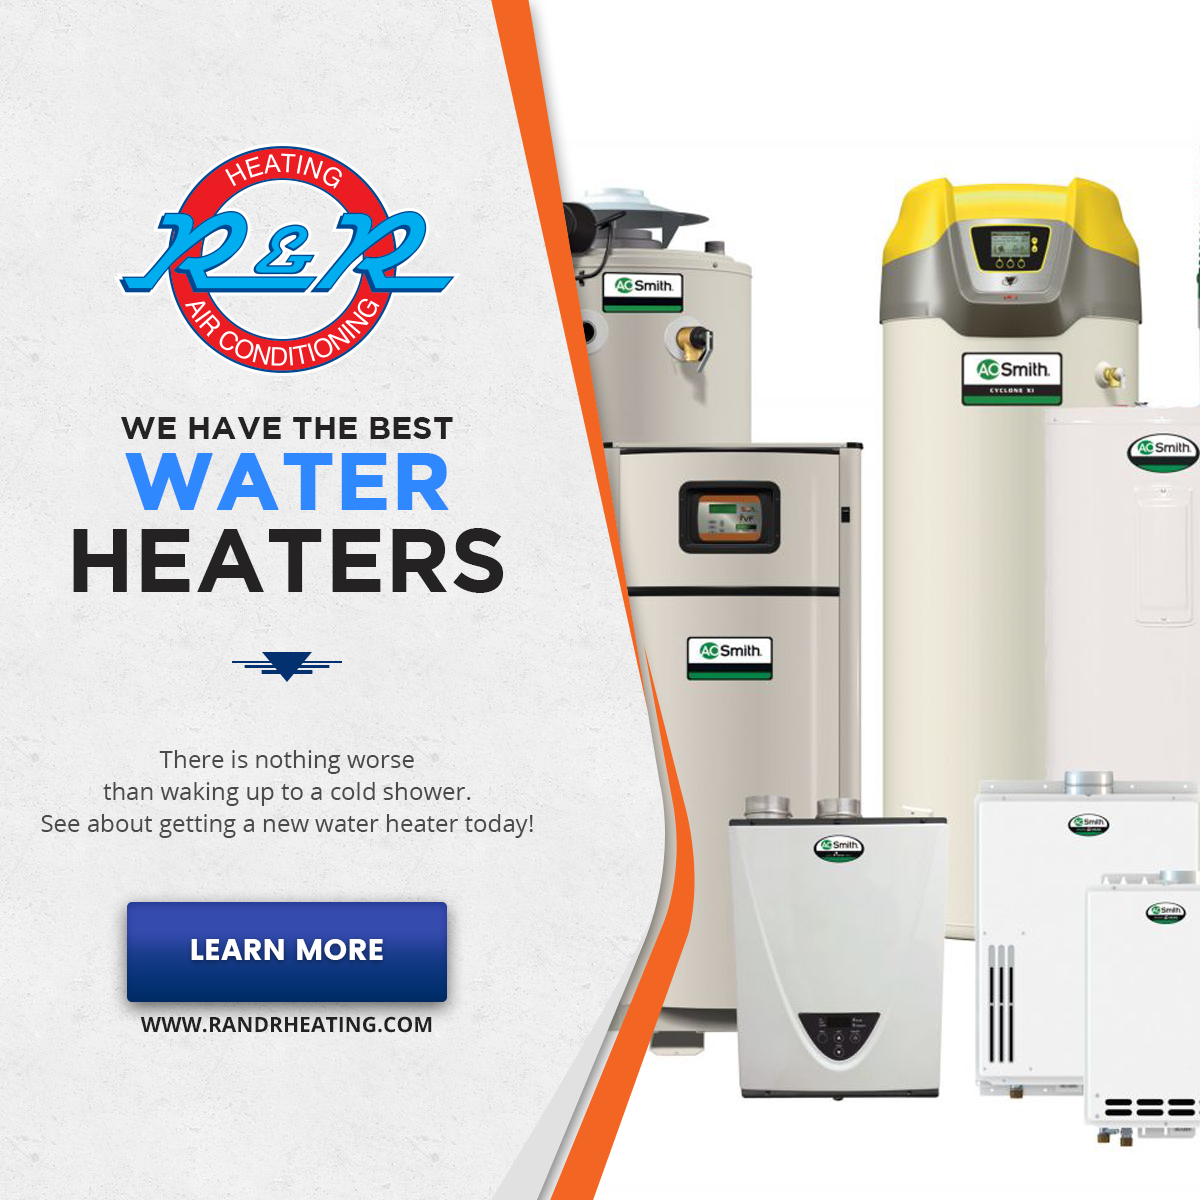 In need of a new water heater? Call R&R Heating & Air